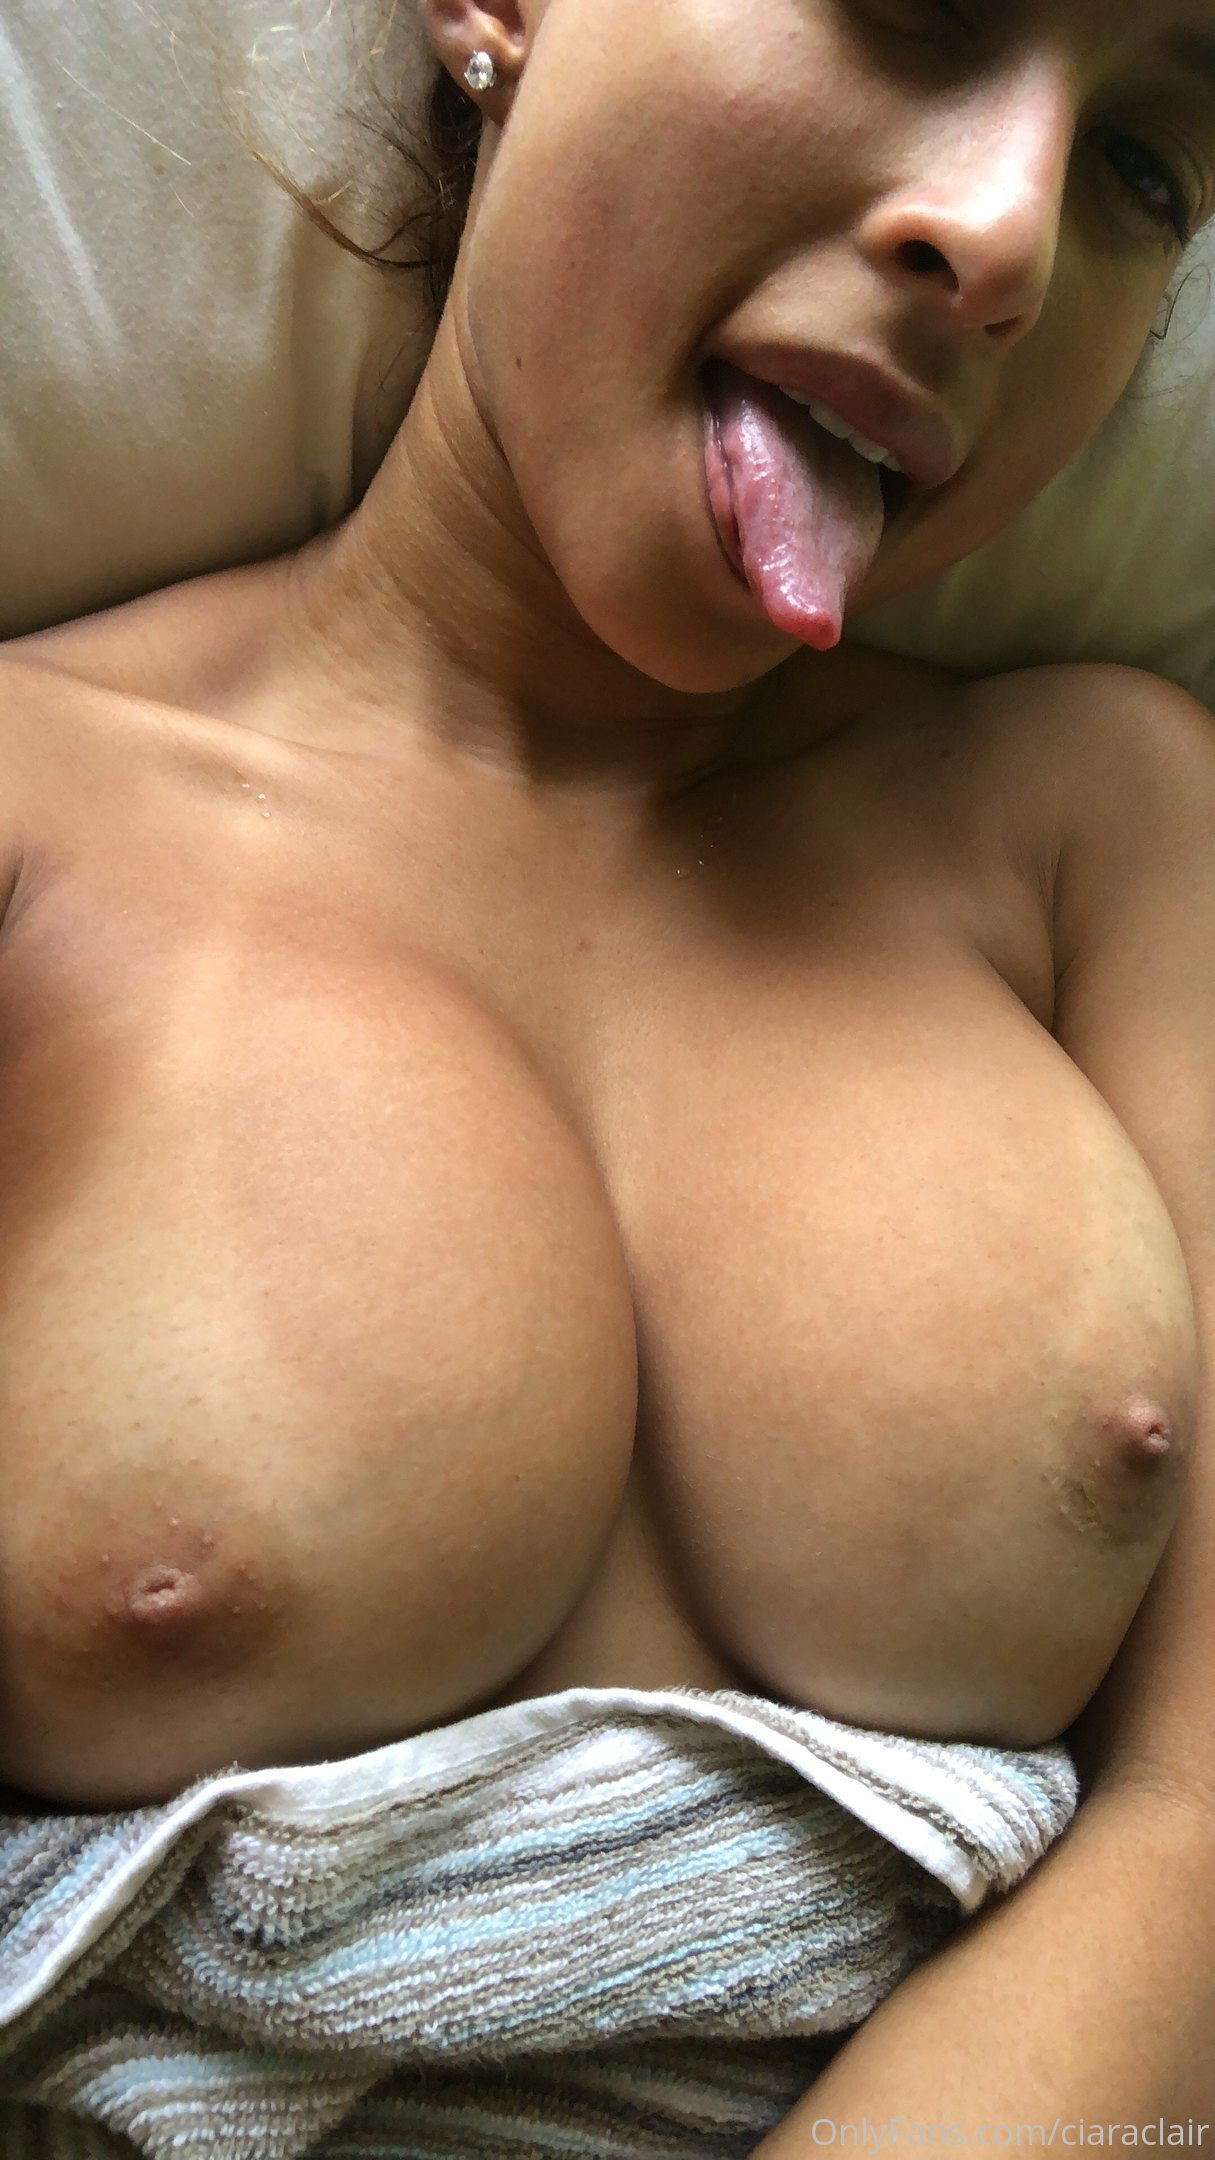 CiaraClairxo Nude Hot Latina Model Onlyfans Gallery Leaked